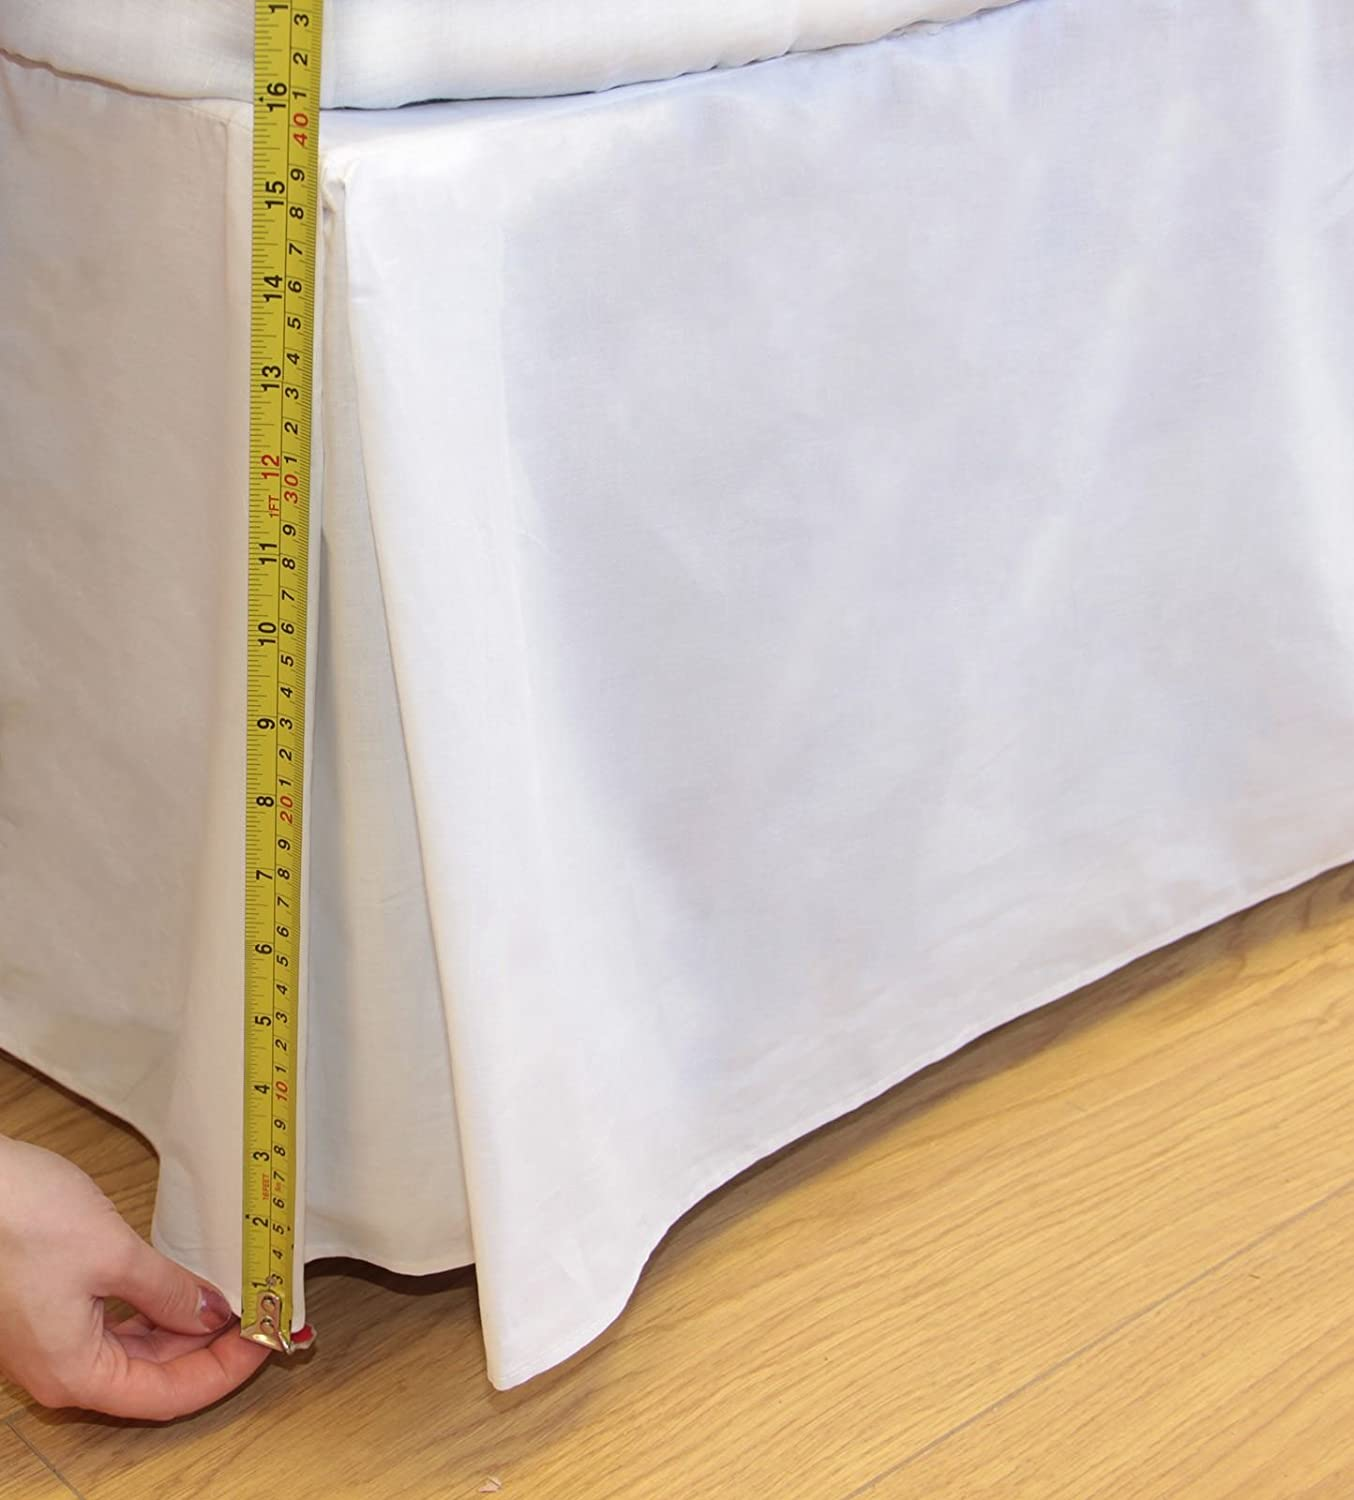 Ideal Textiles, Percale 180 Thread Count, Base Valance Sheet, Platform Valance, White, Double Bed Size